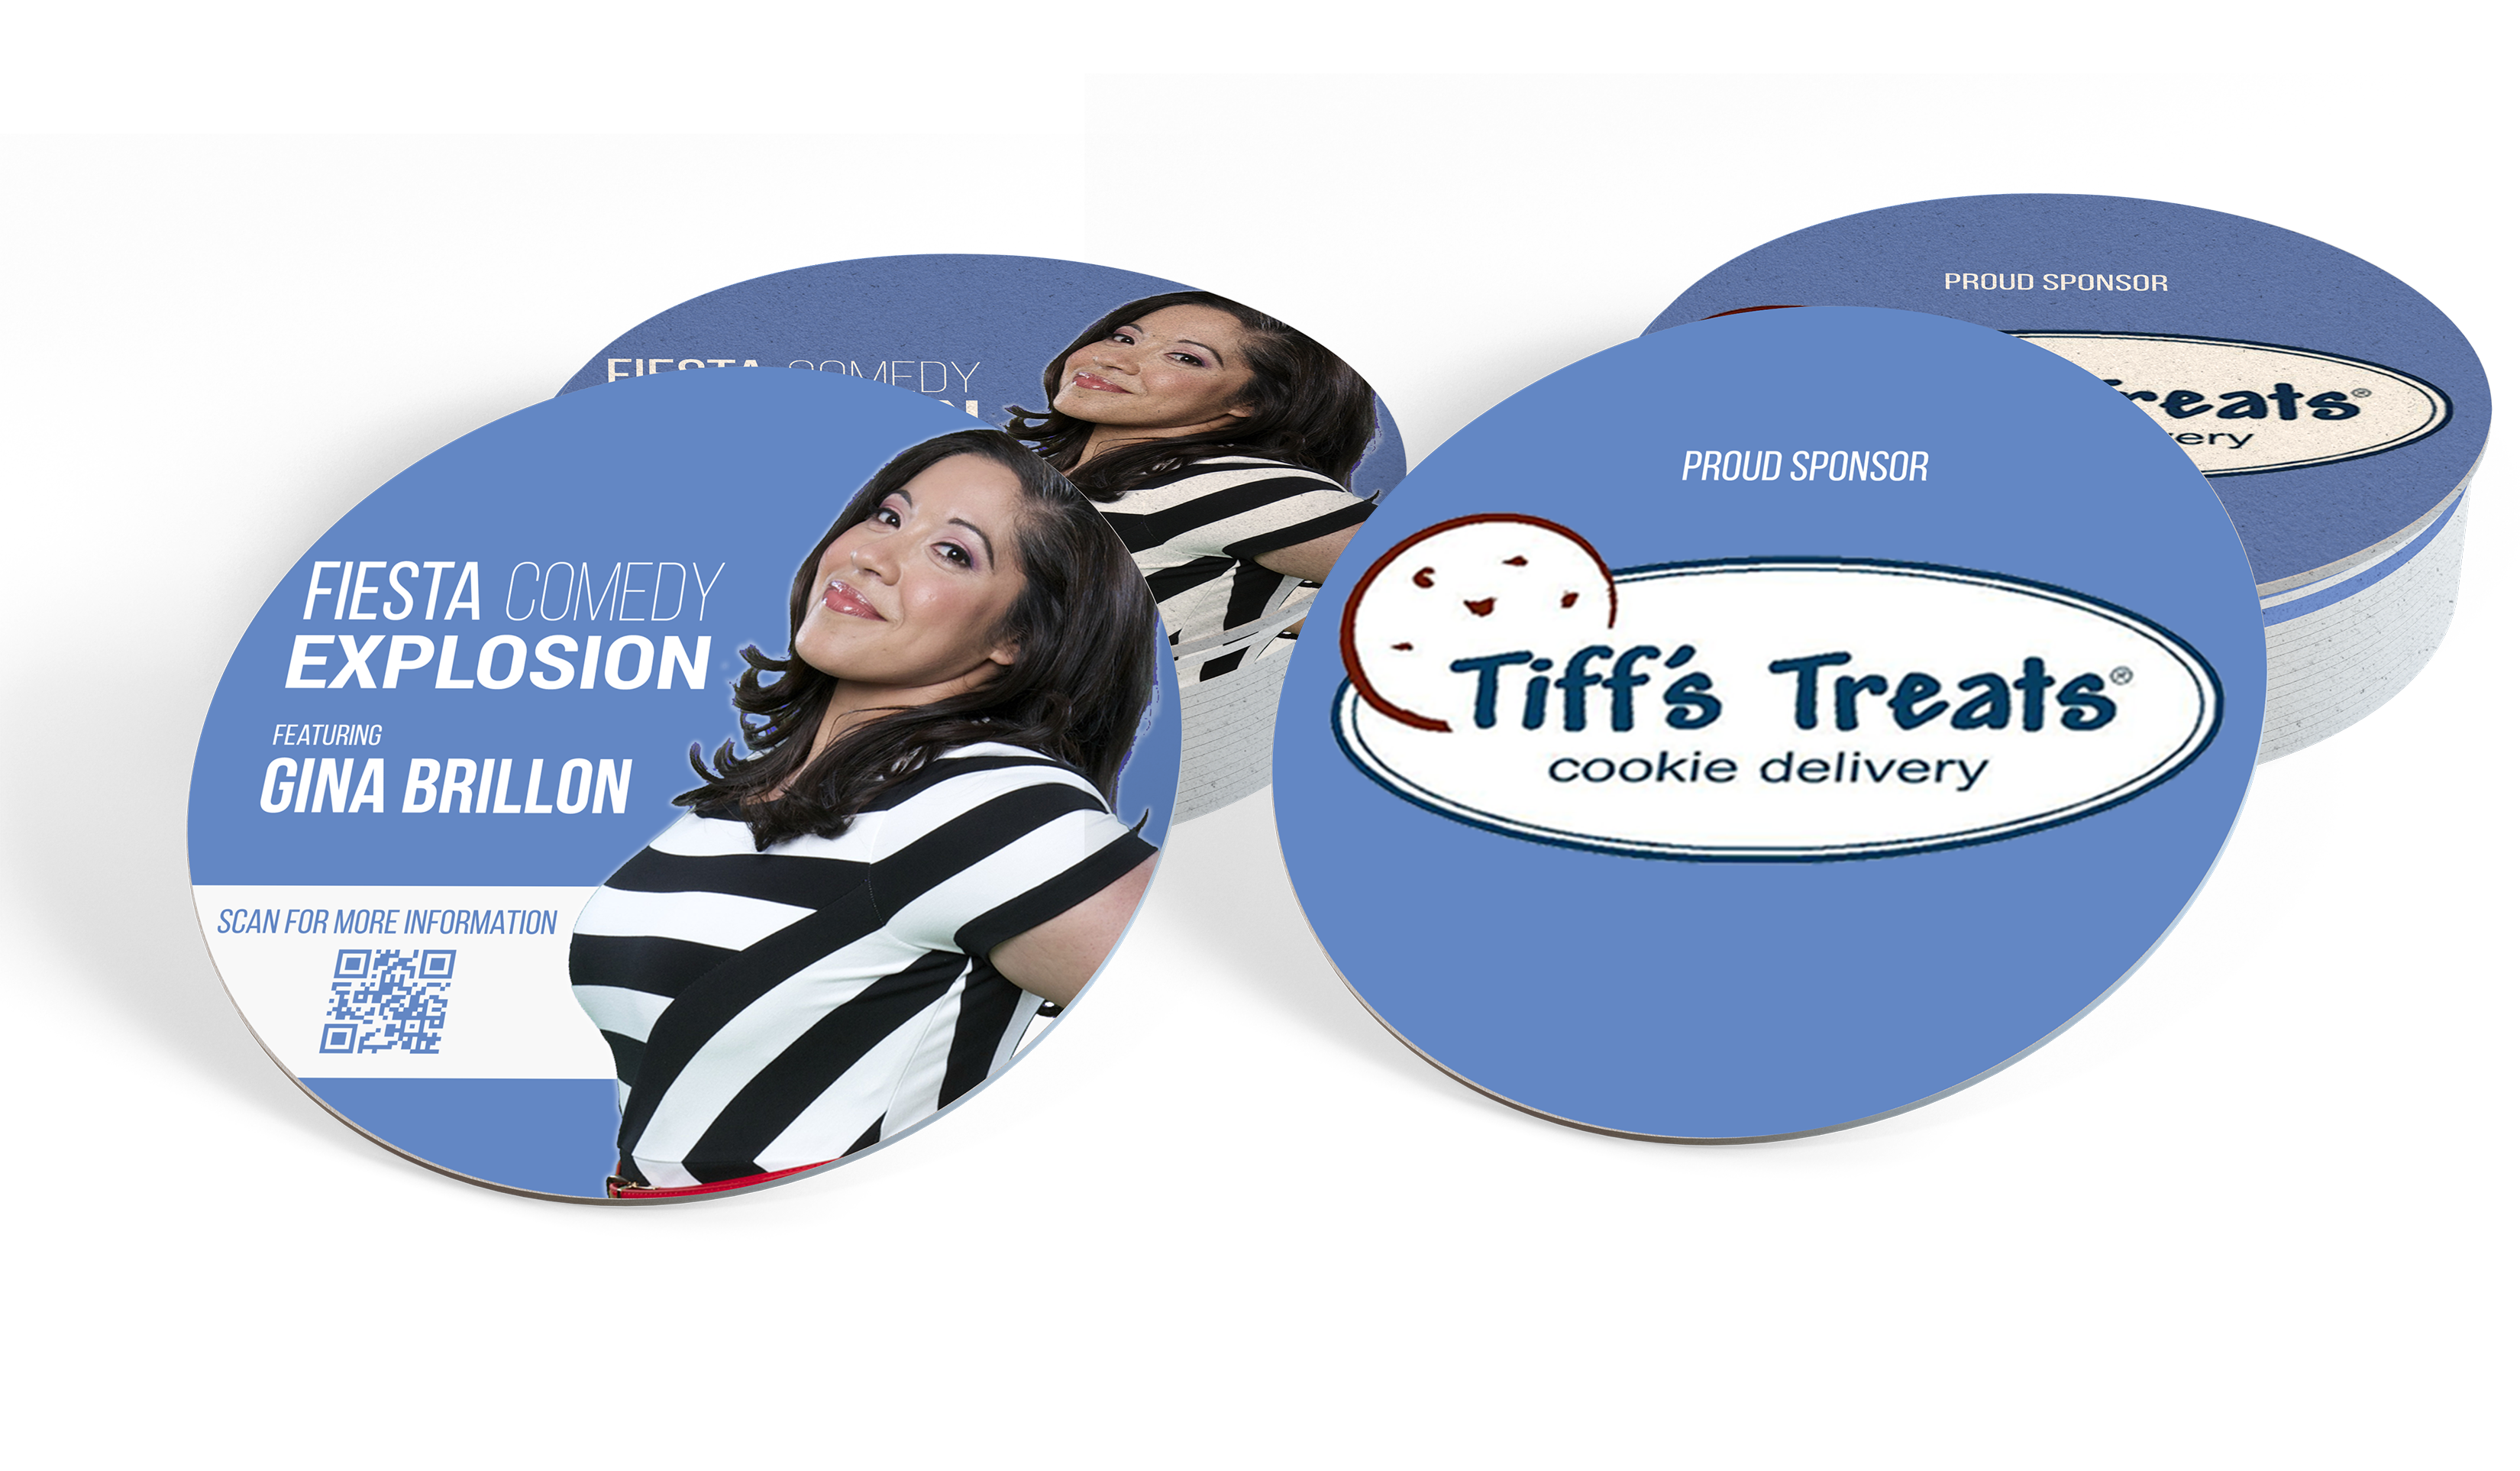 Inserts Distribution | Ways to Give | Official Priest Holmes Foundation Website | Priest Holmes Son | Priest Holmes Girlfriend | Priest Holmes Wife | Priest Holmes Engaged | Priest Holmes Family | Priest Holmes is Engaged